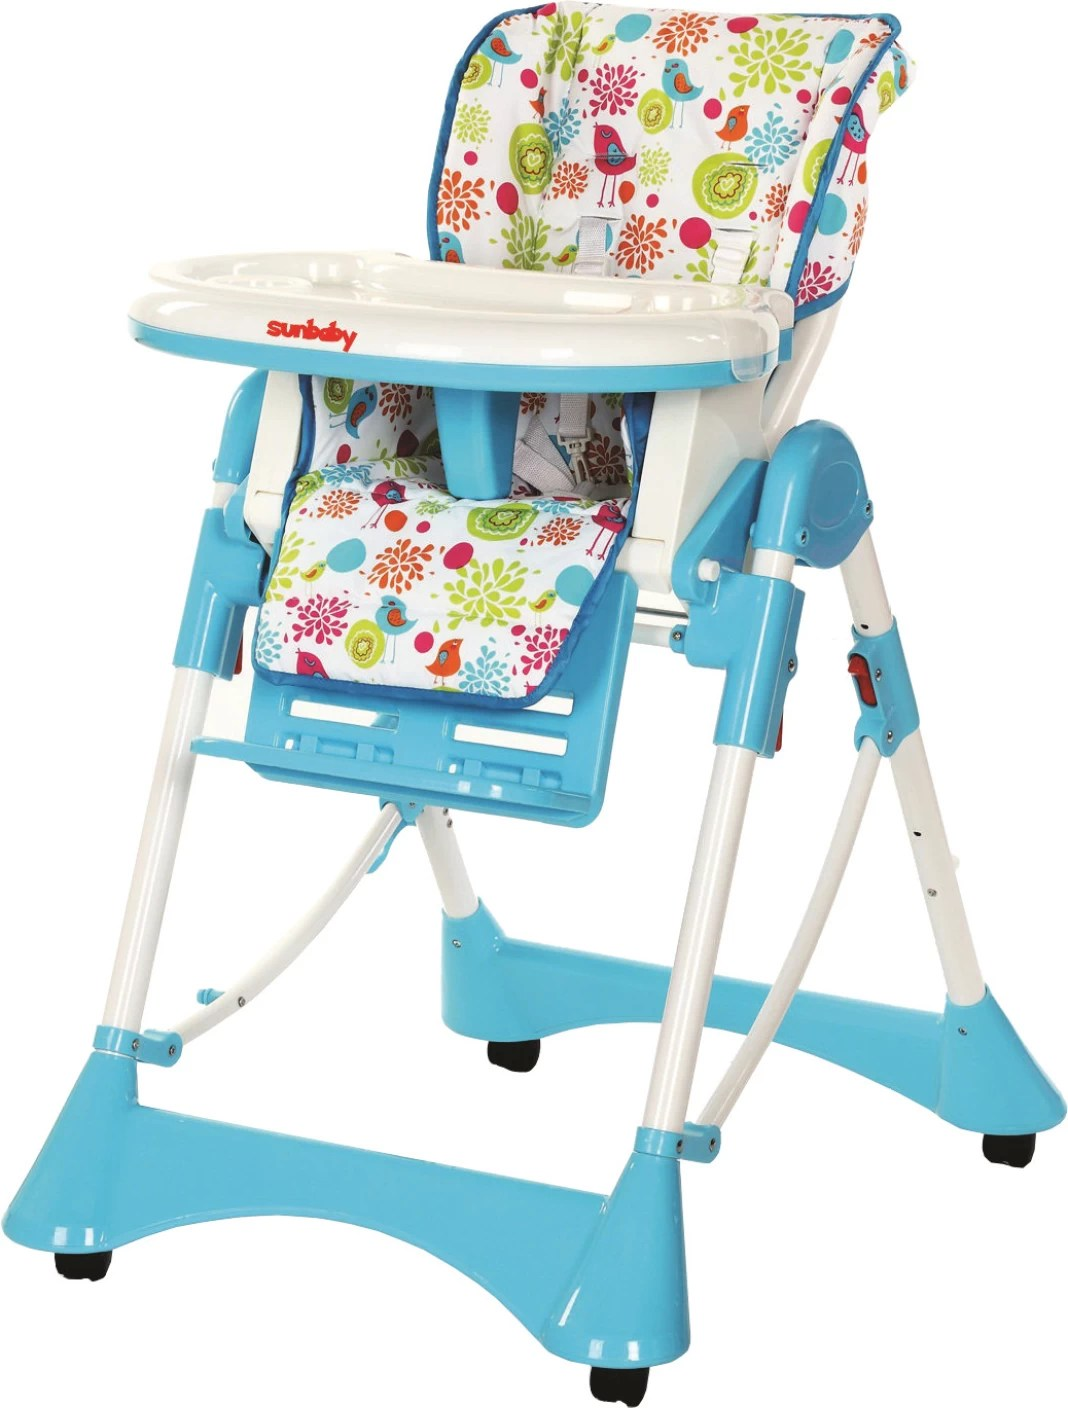 high chair buy baby accent living room chairs sunbaby new deluxe care products in